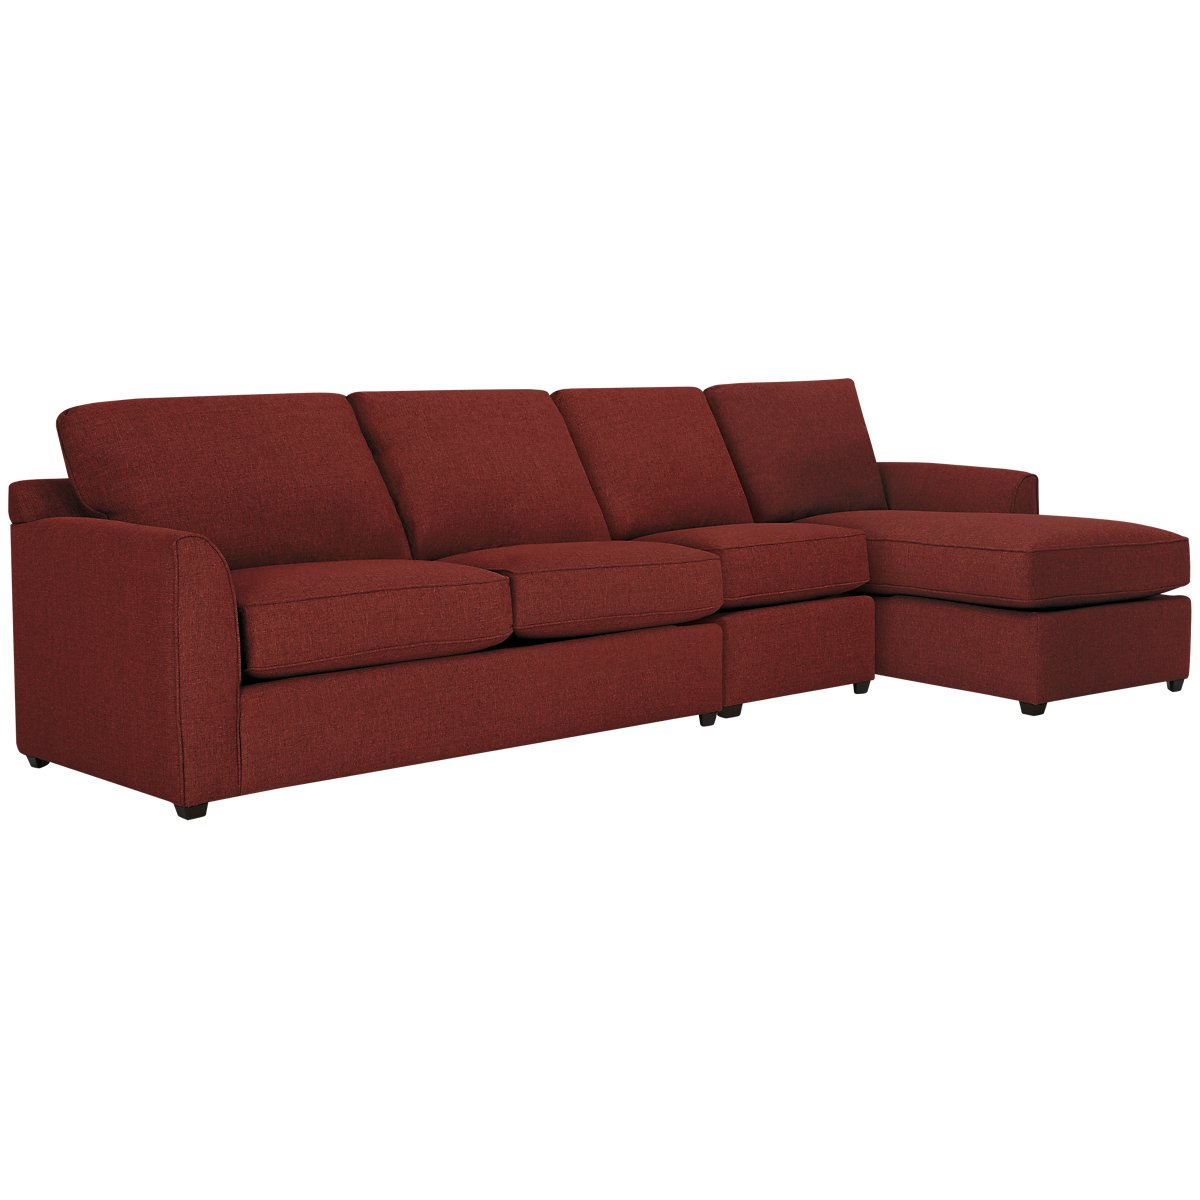 Asheville Red Fabric Small Right Chaise Sectional